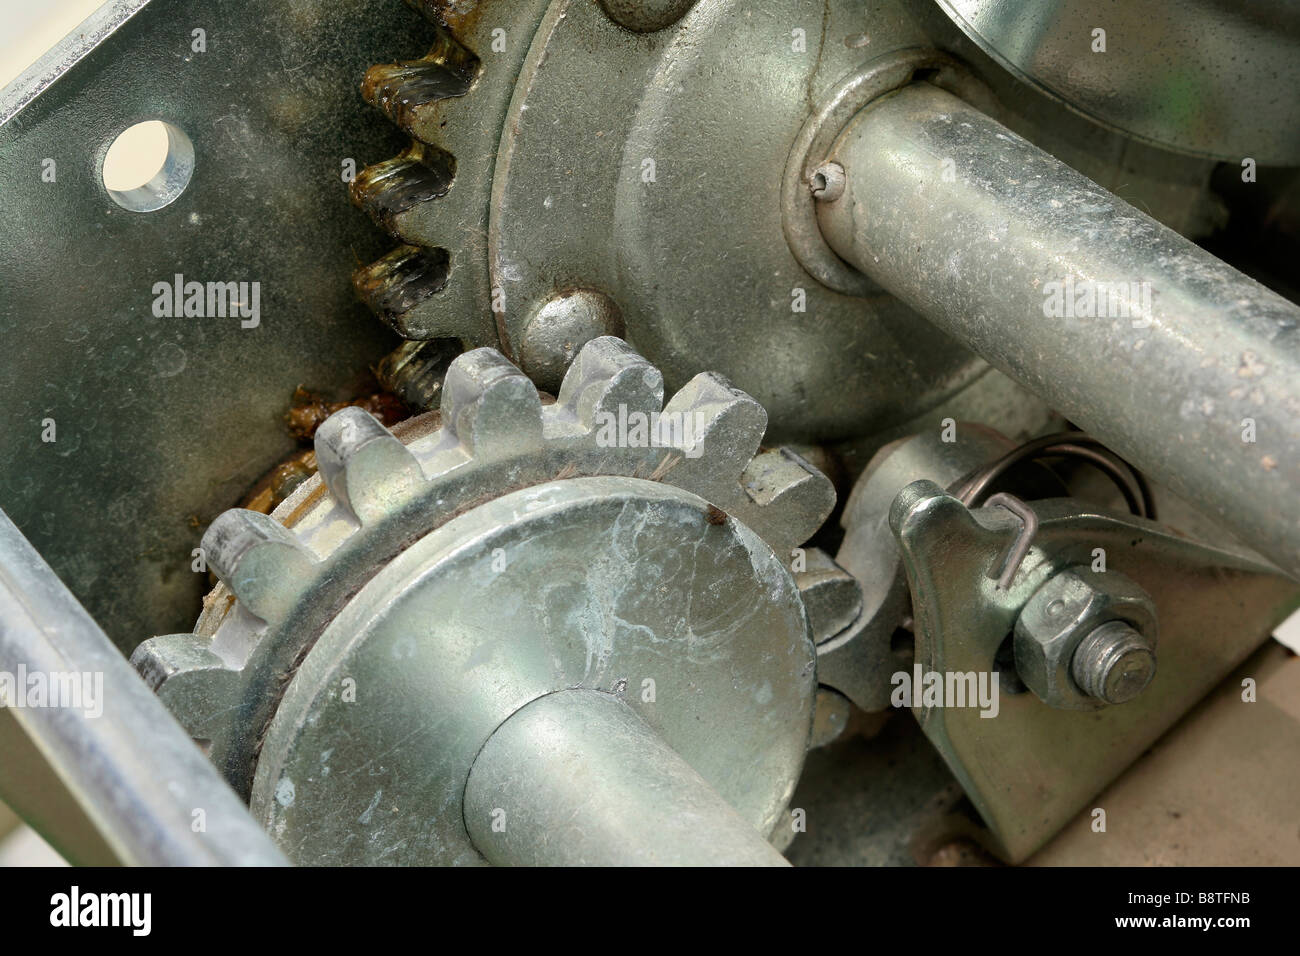 Gear train and ratchet in winch Stock Photo: 22666823 - Alamy